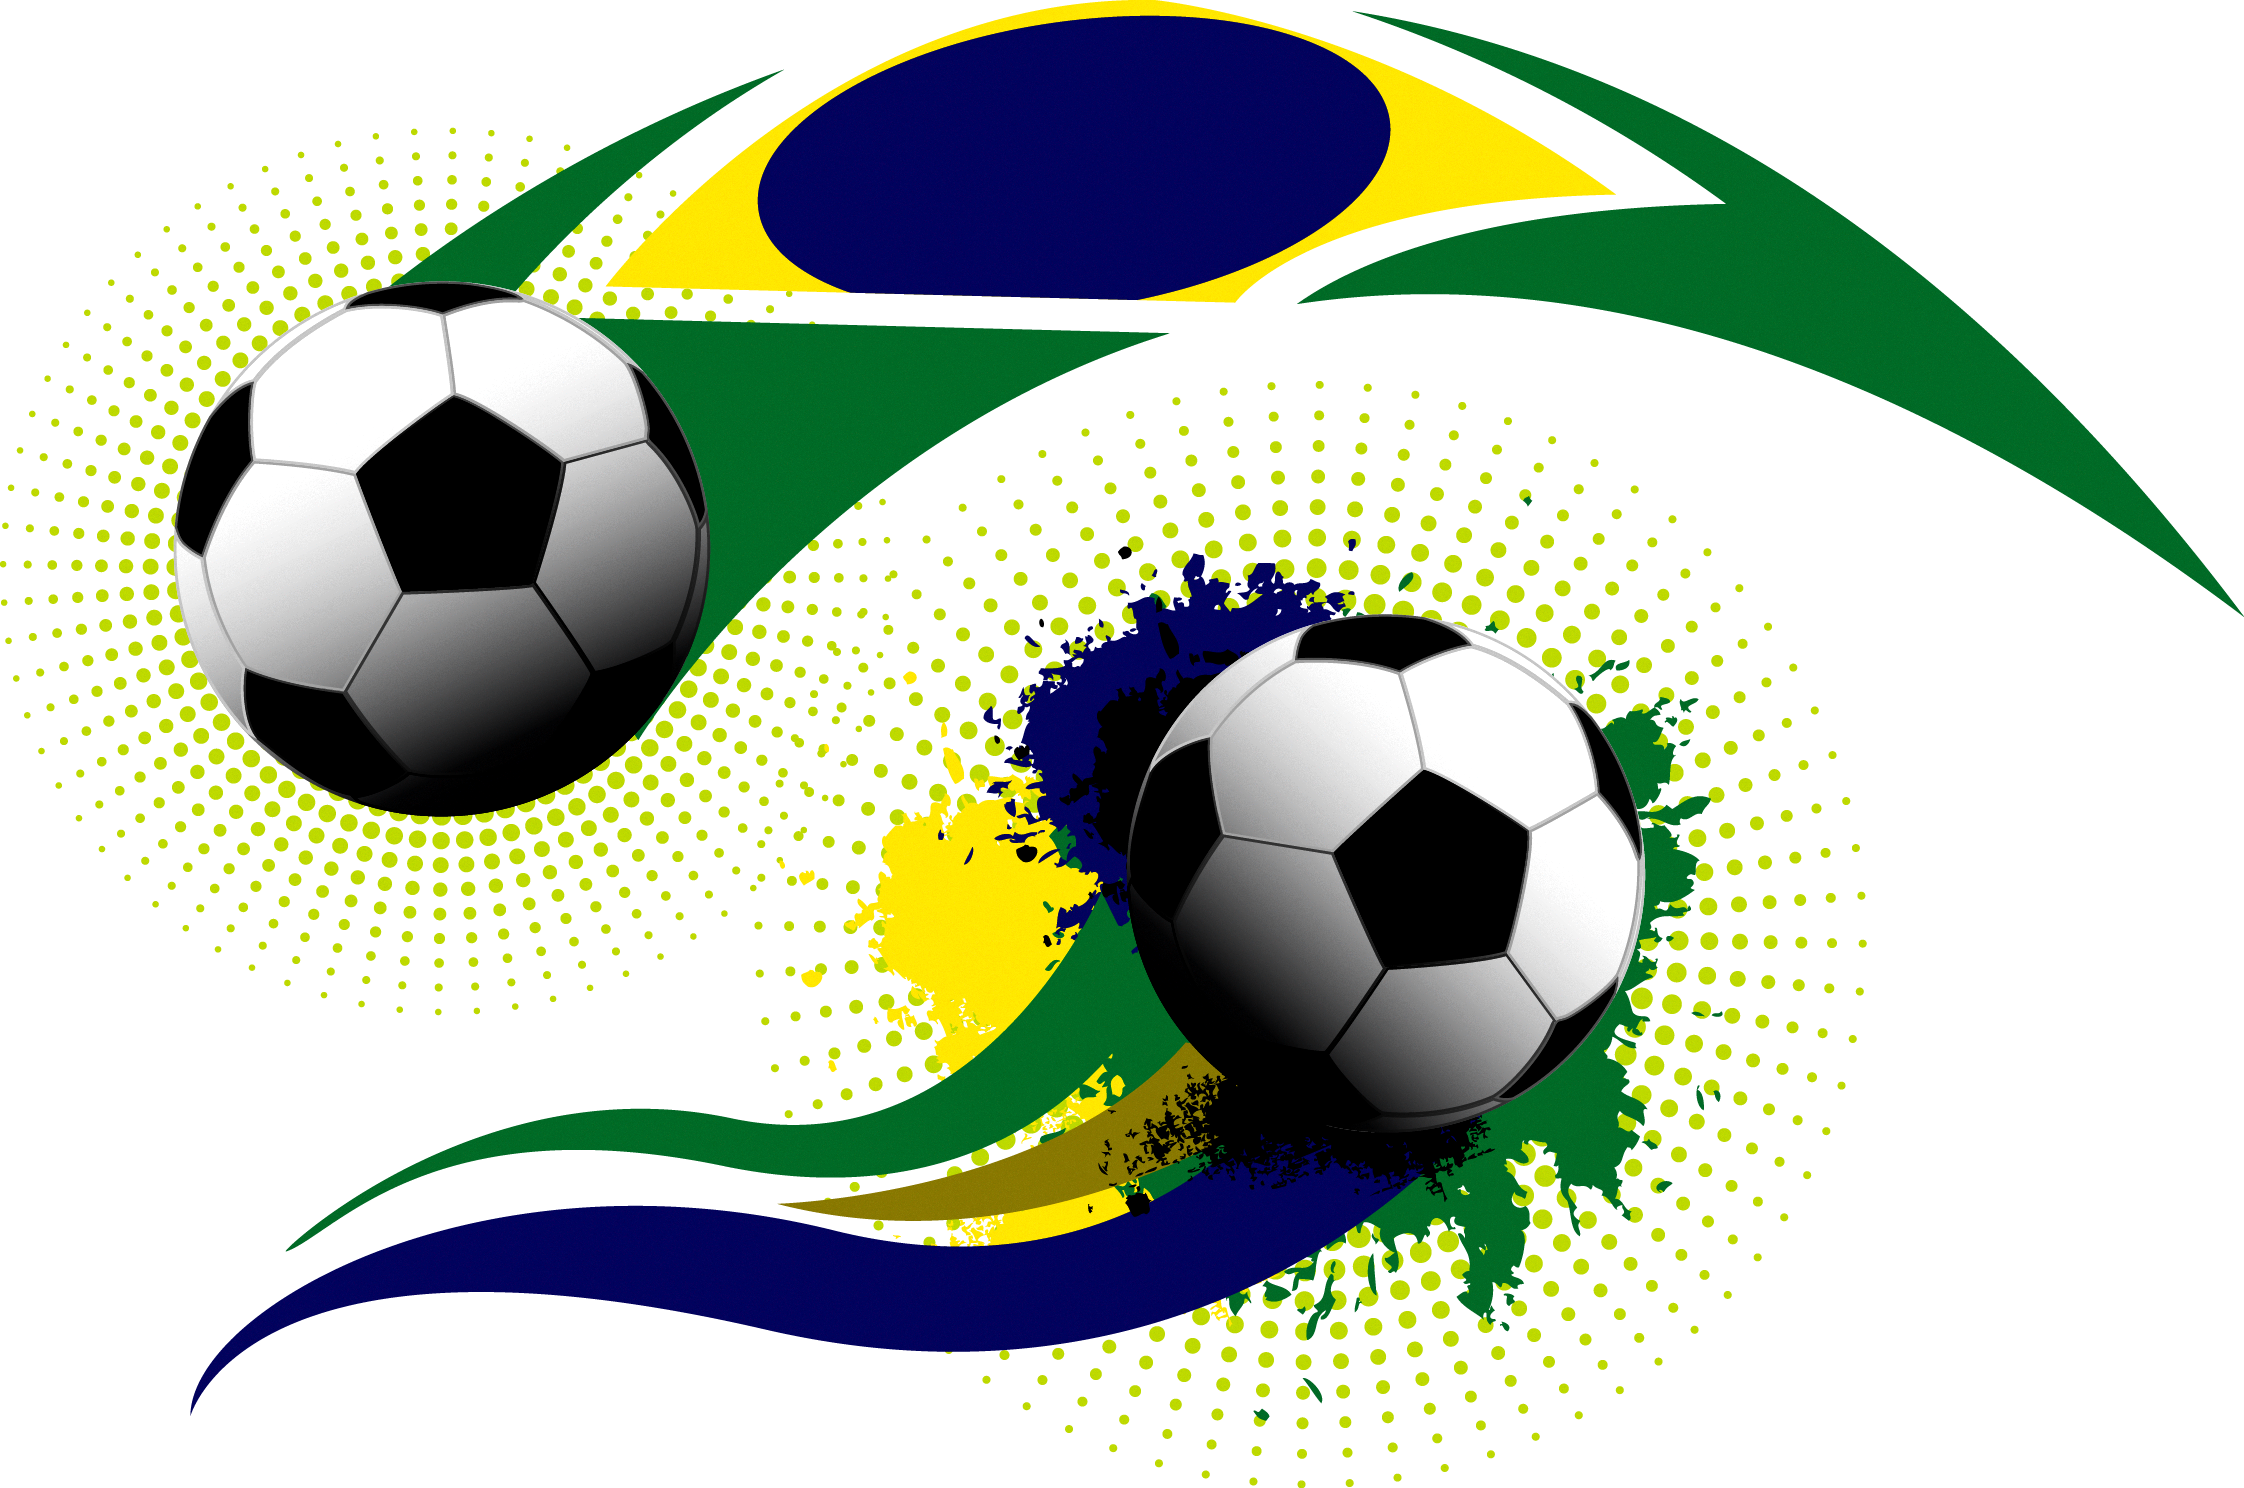 fifa world cup. Clipart football beer